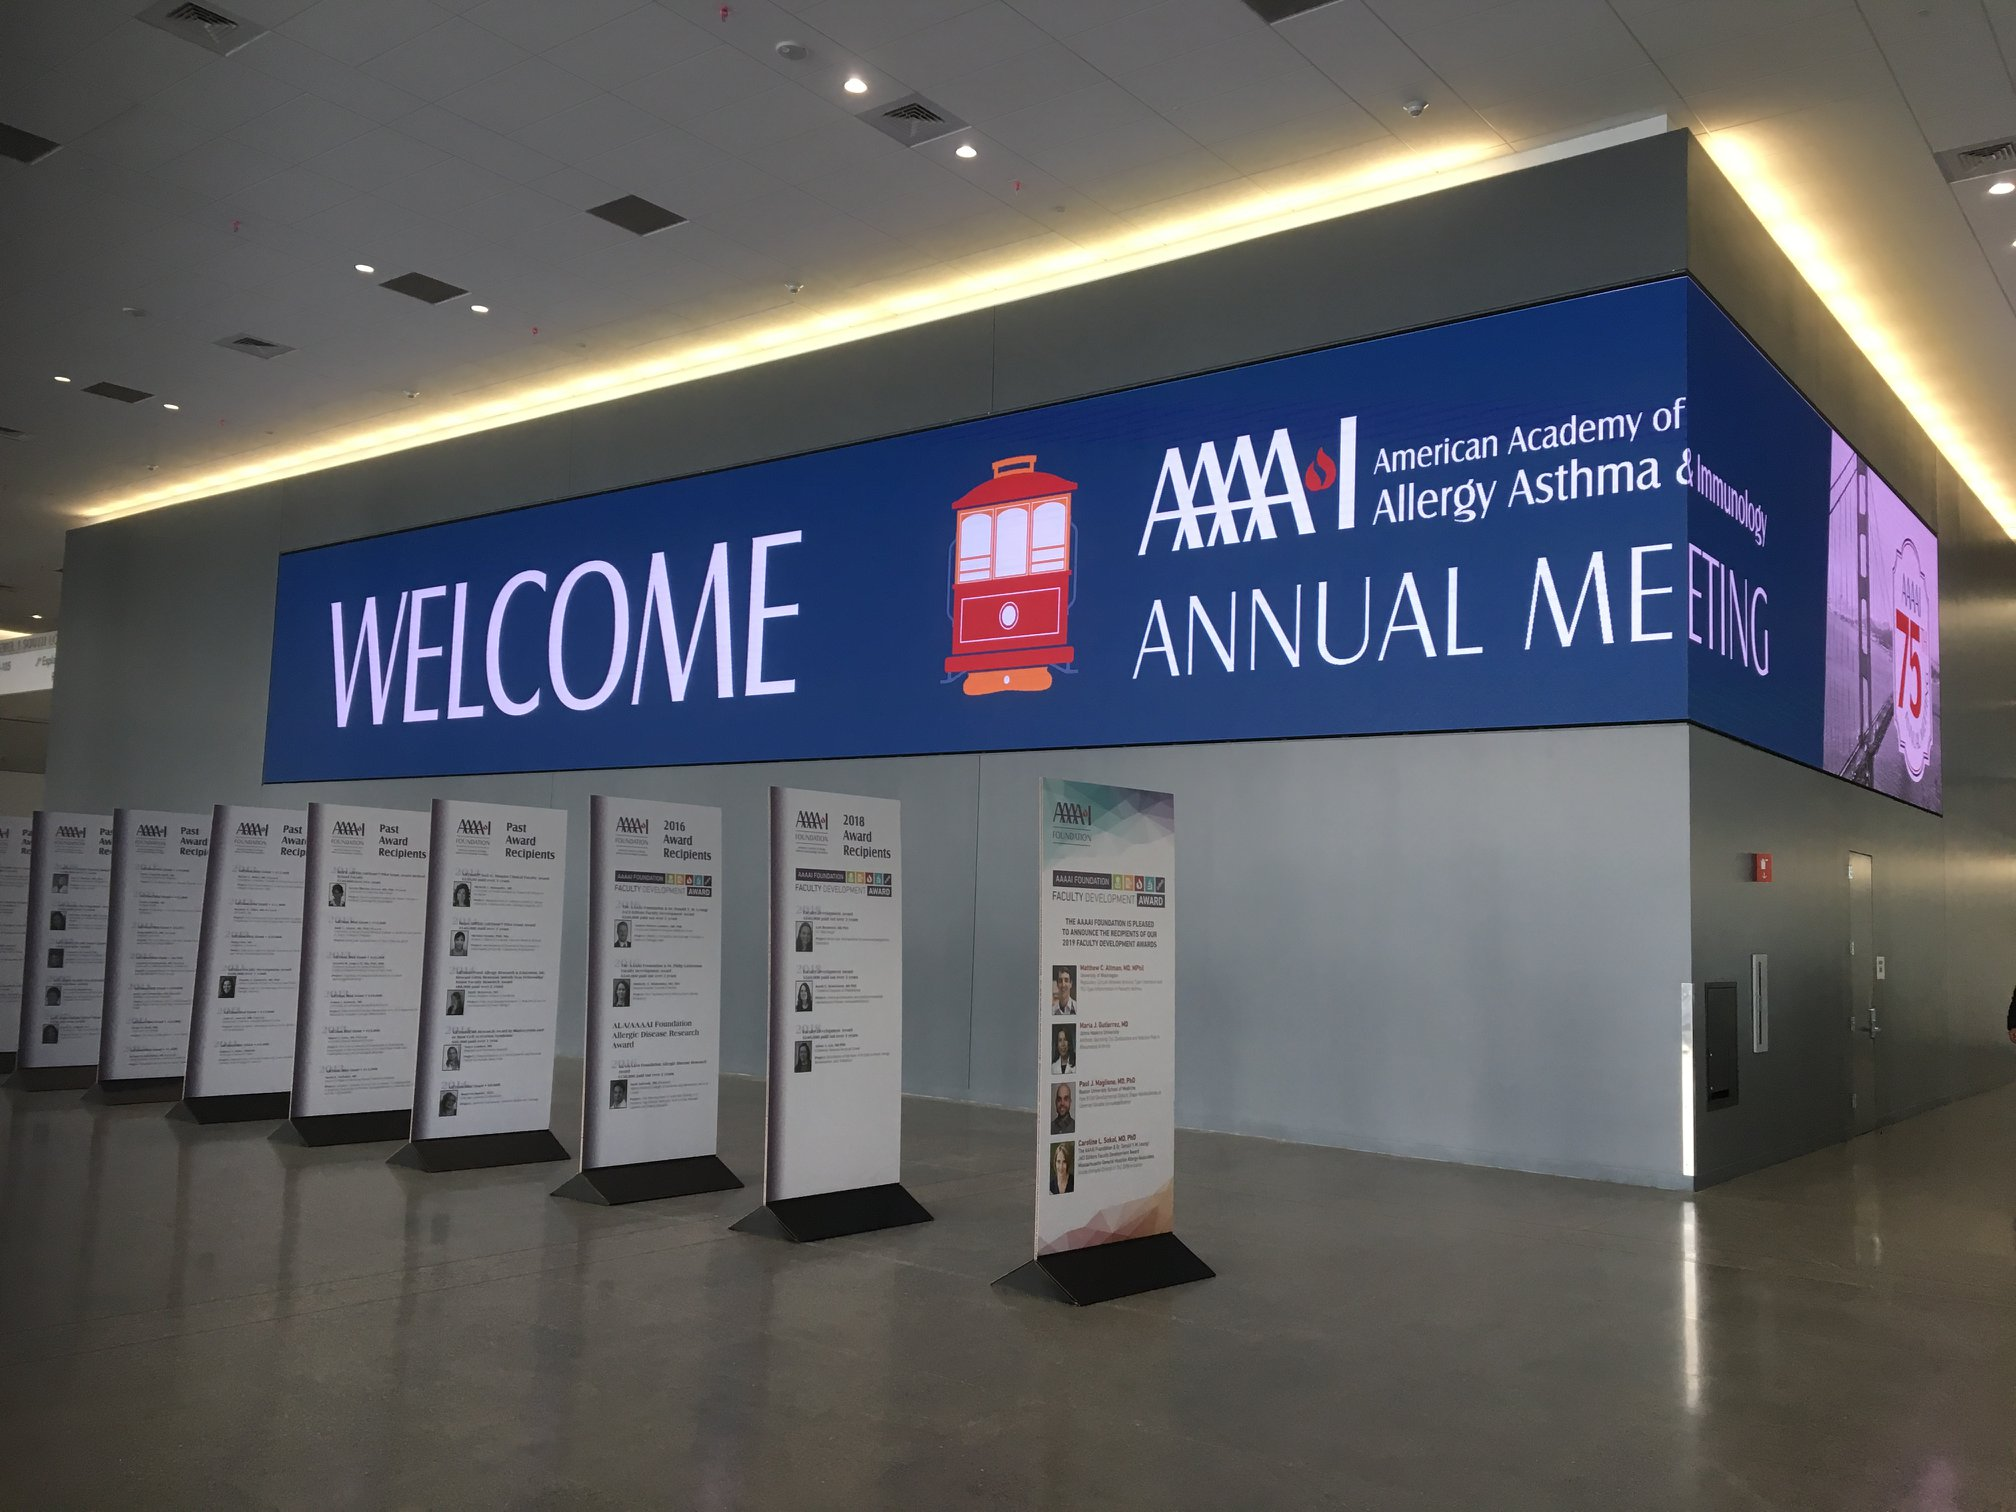 FPIES Highlights from the AAAAI Annual Meeting